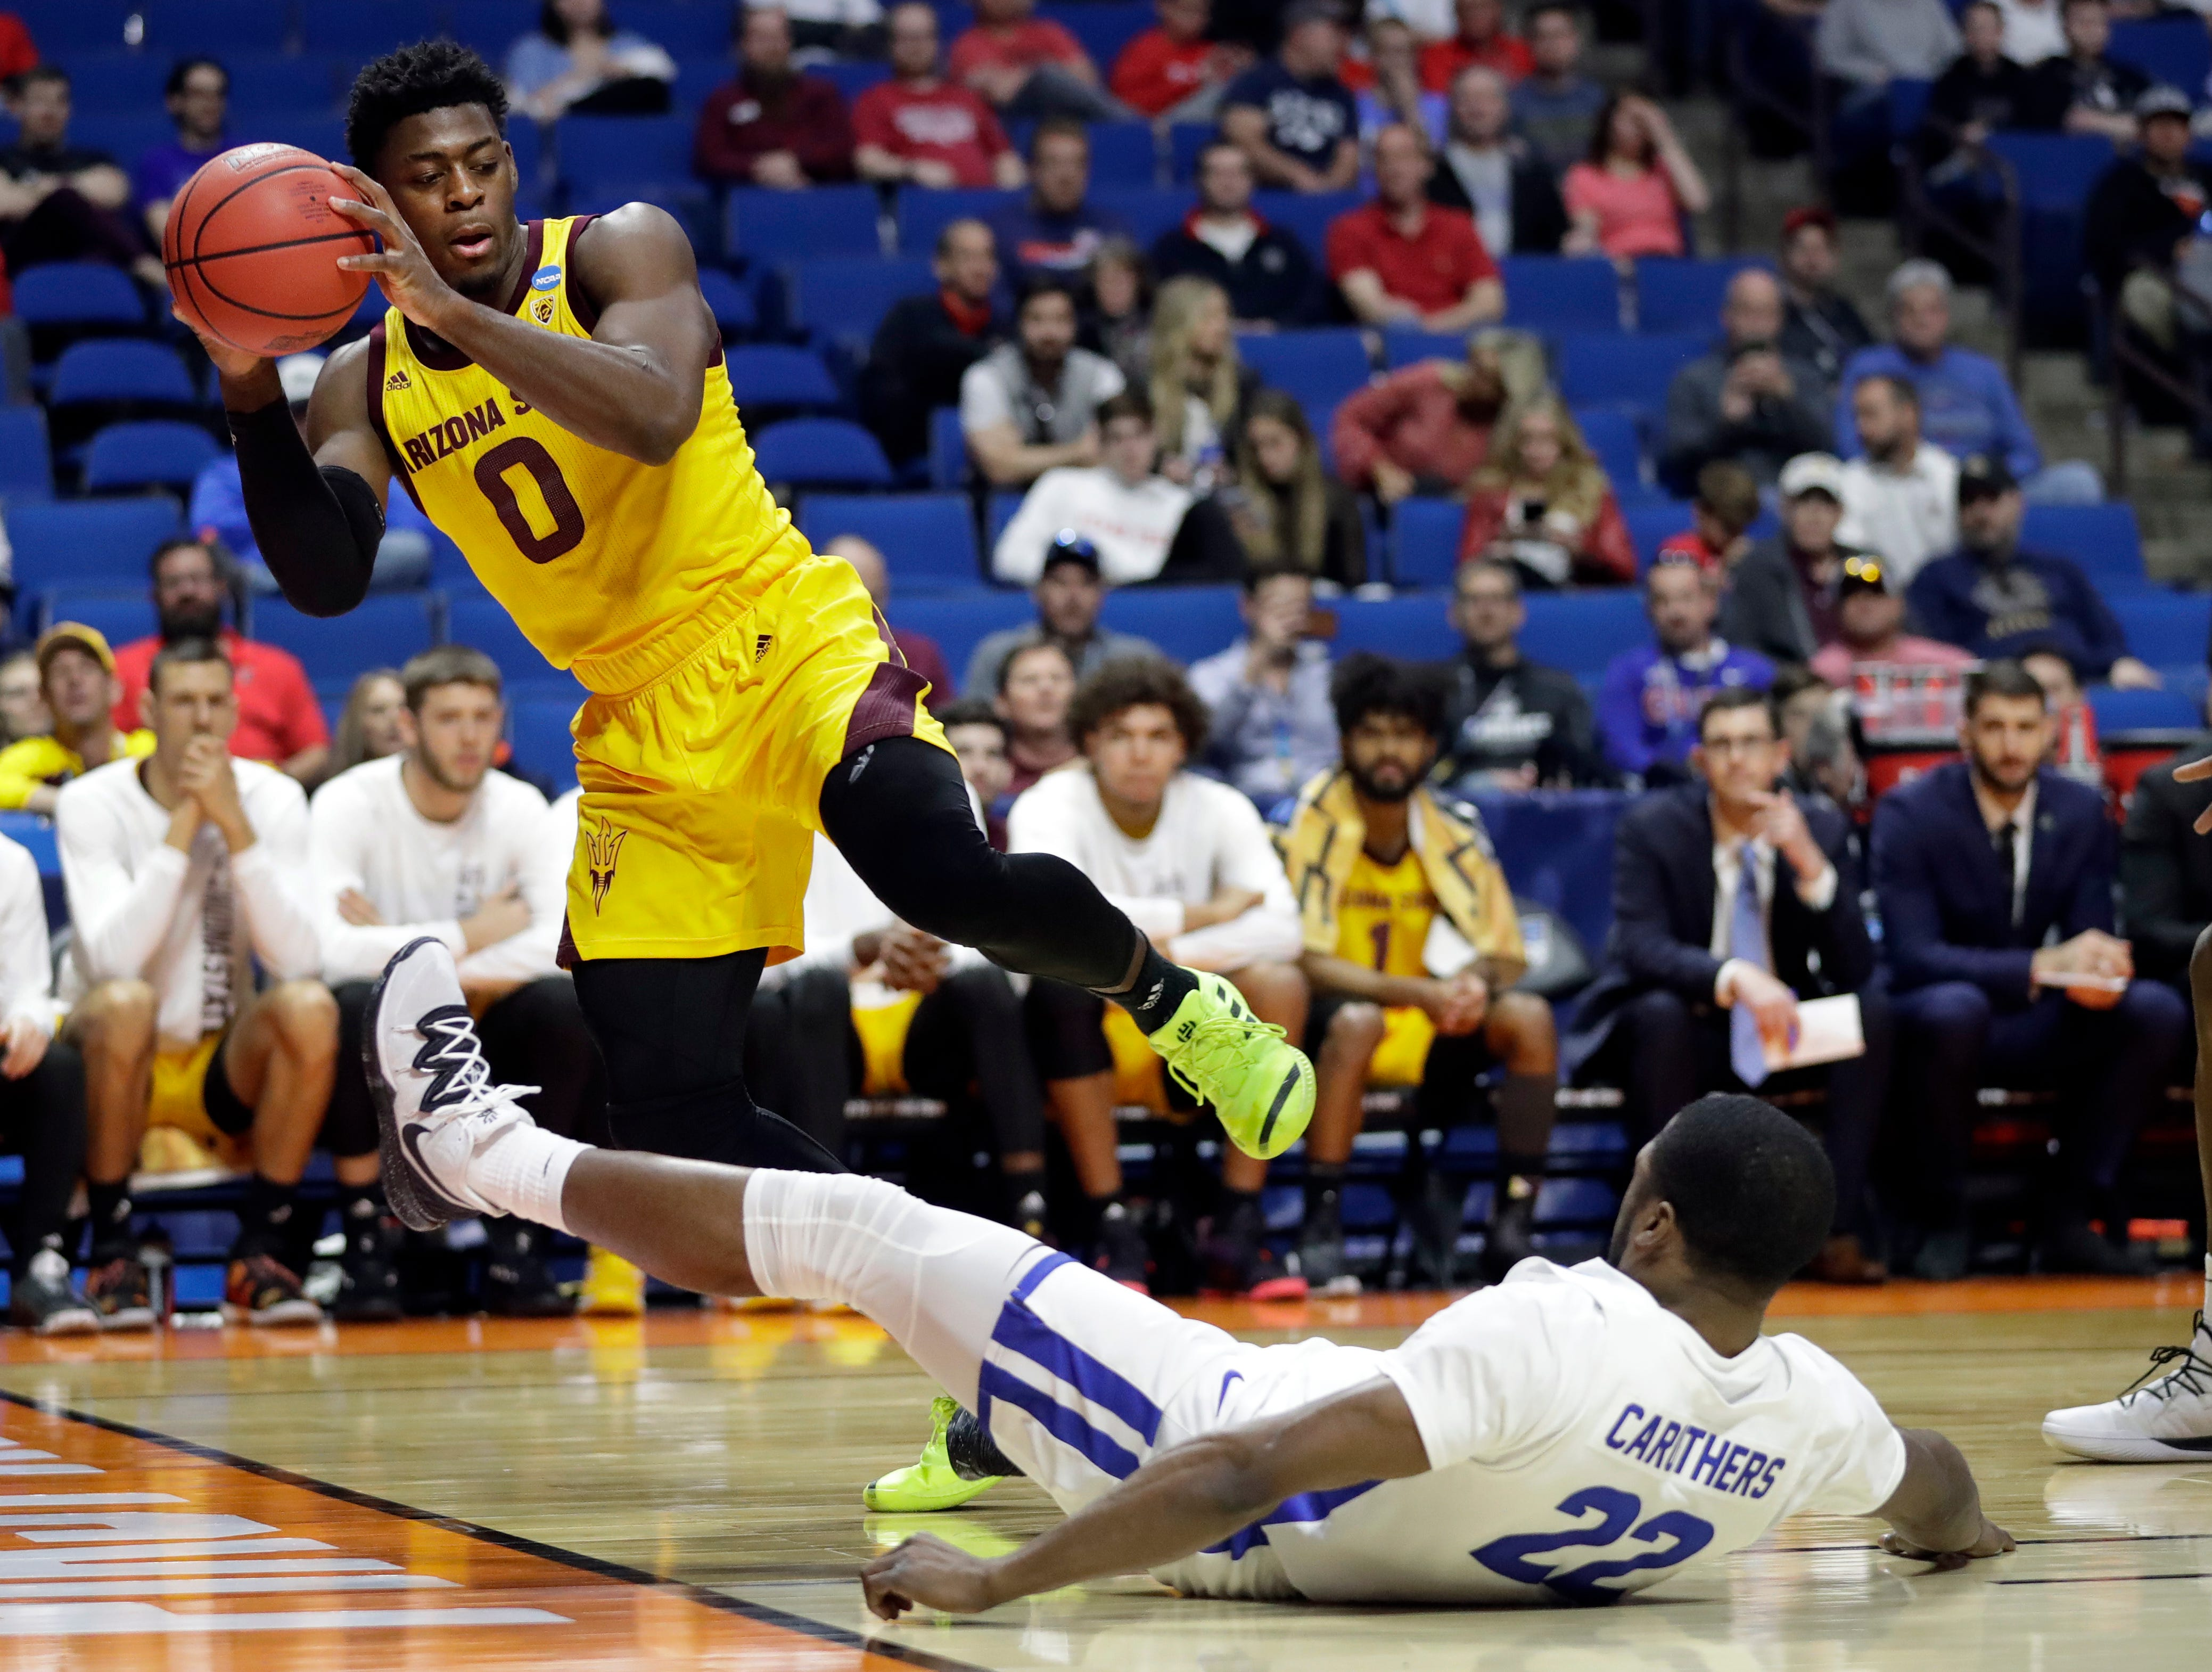 Arizona State's Luguentz Dort (0) grabs a ball before it goes out of bounds after colliding with Buffalo's Dontay Caruthers (22) during the second half of a first round men's college basketball game in the NCAA Tournament Friday, March 22, 2019, in Tulsa, Okla. (AP Photo/Jeff Roberson)